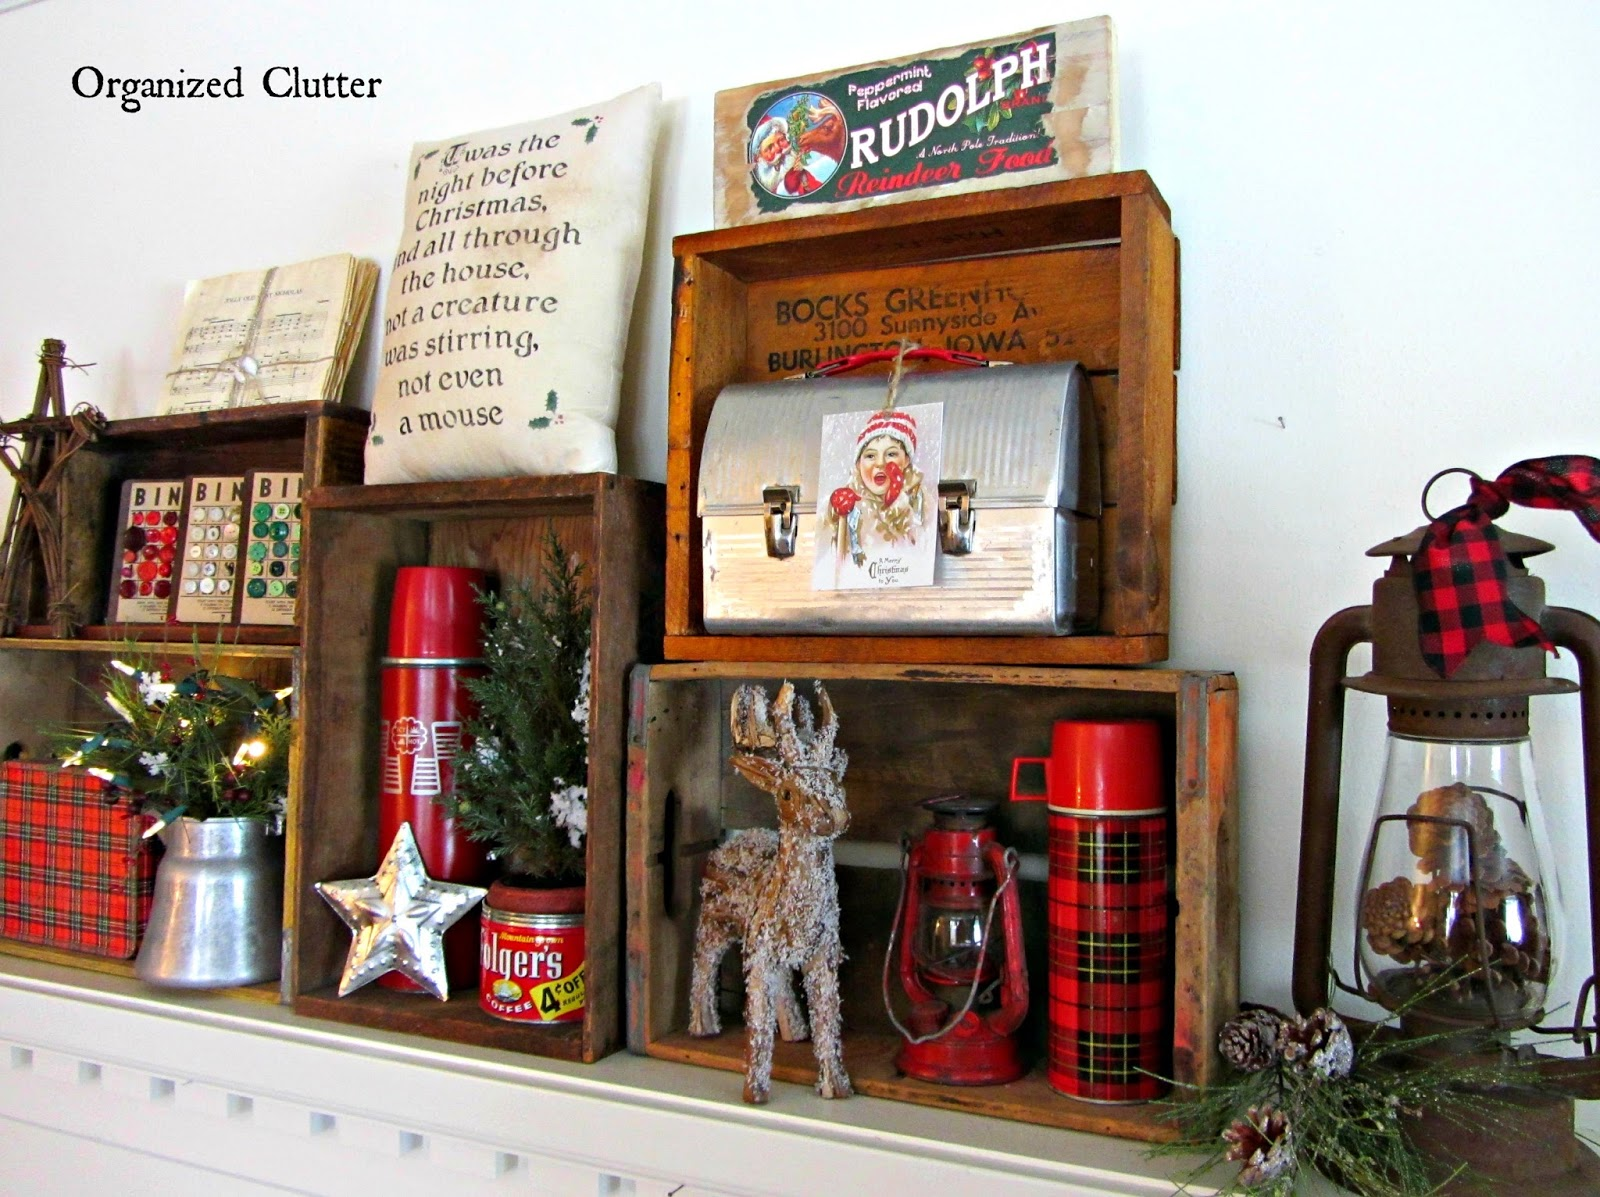 an organized cluttered rustic crate christmas mantel - Decorating Crates For Christmas